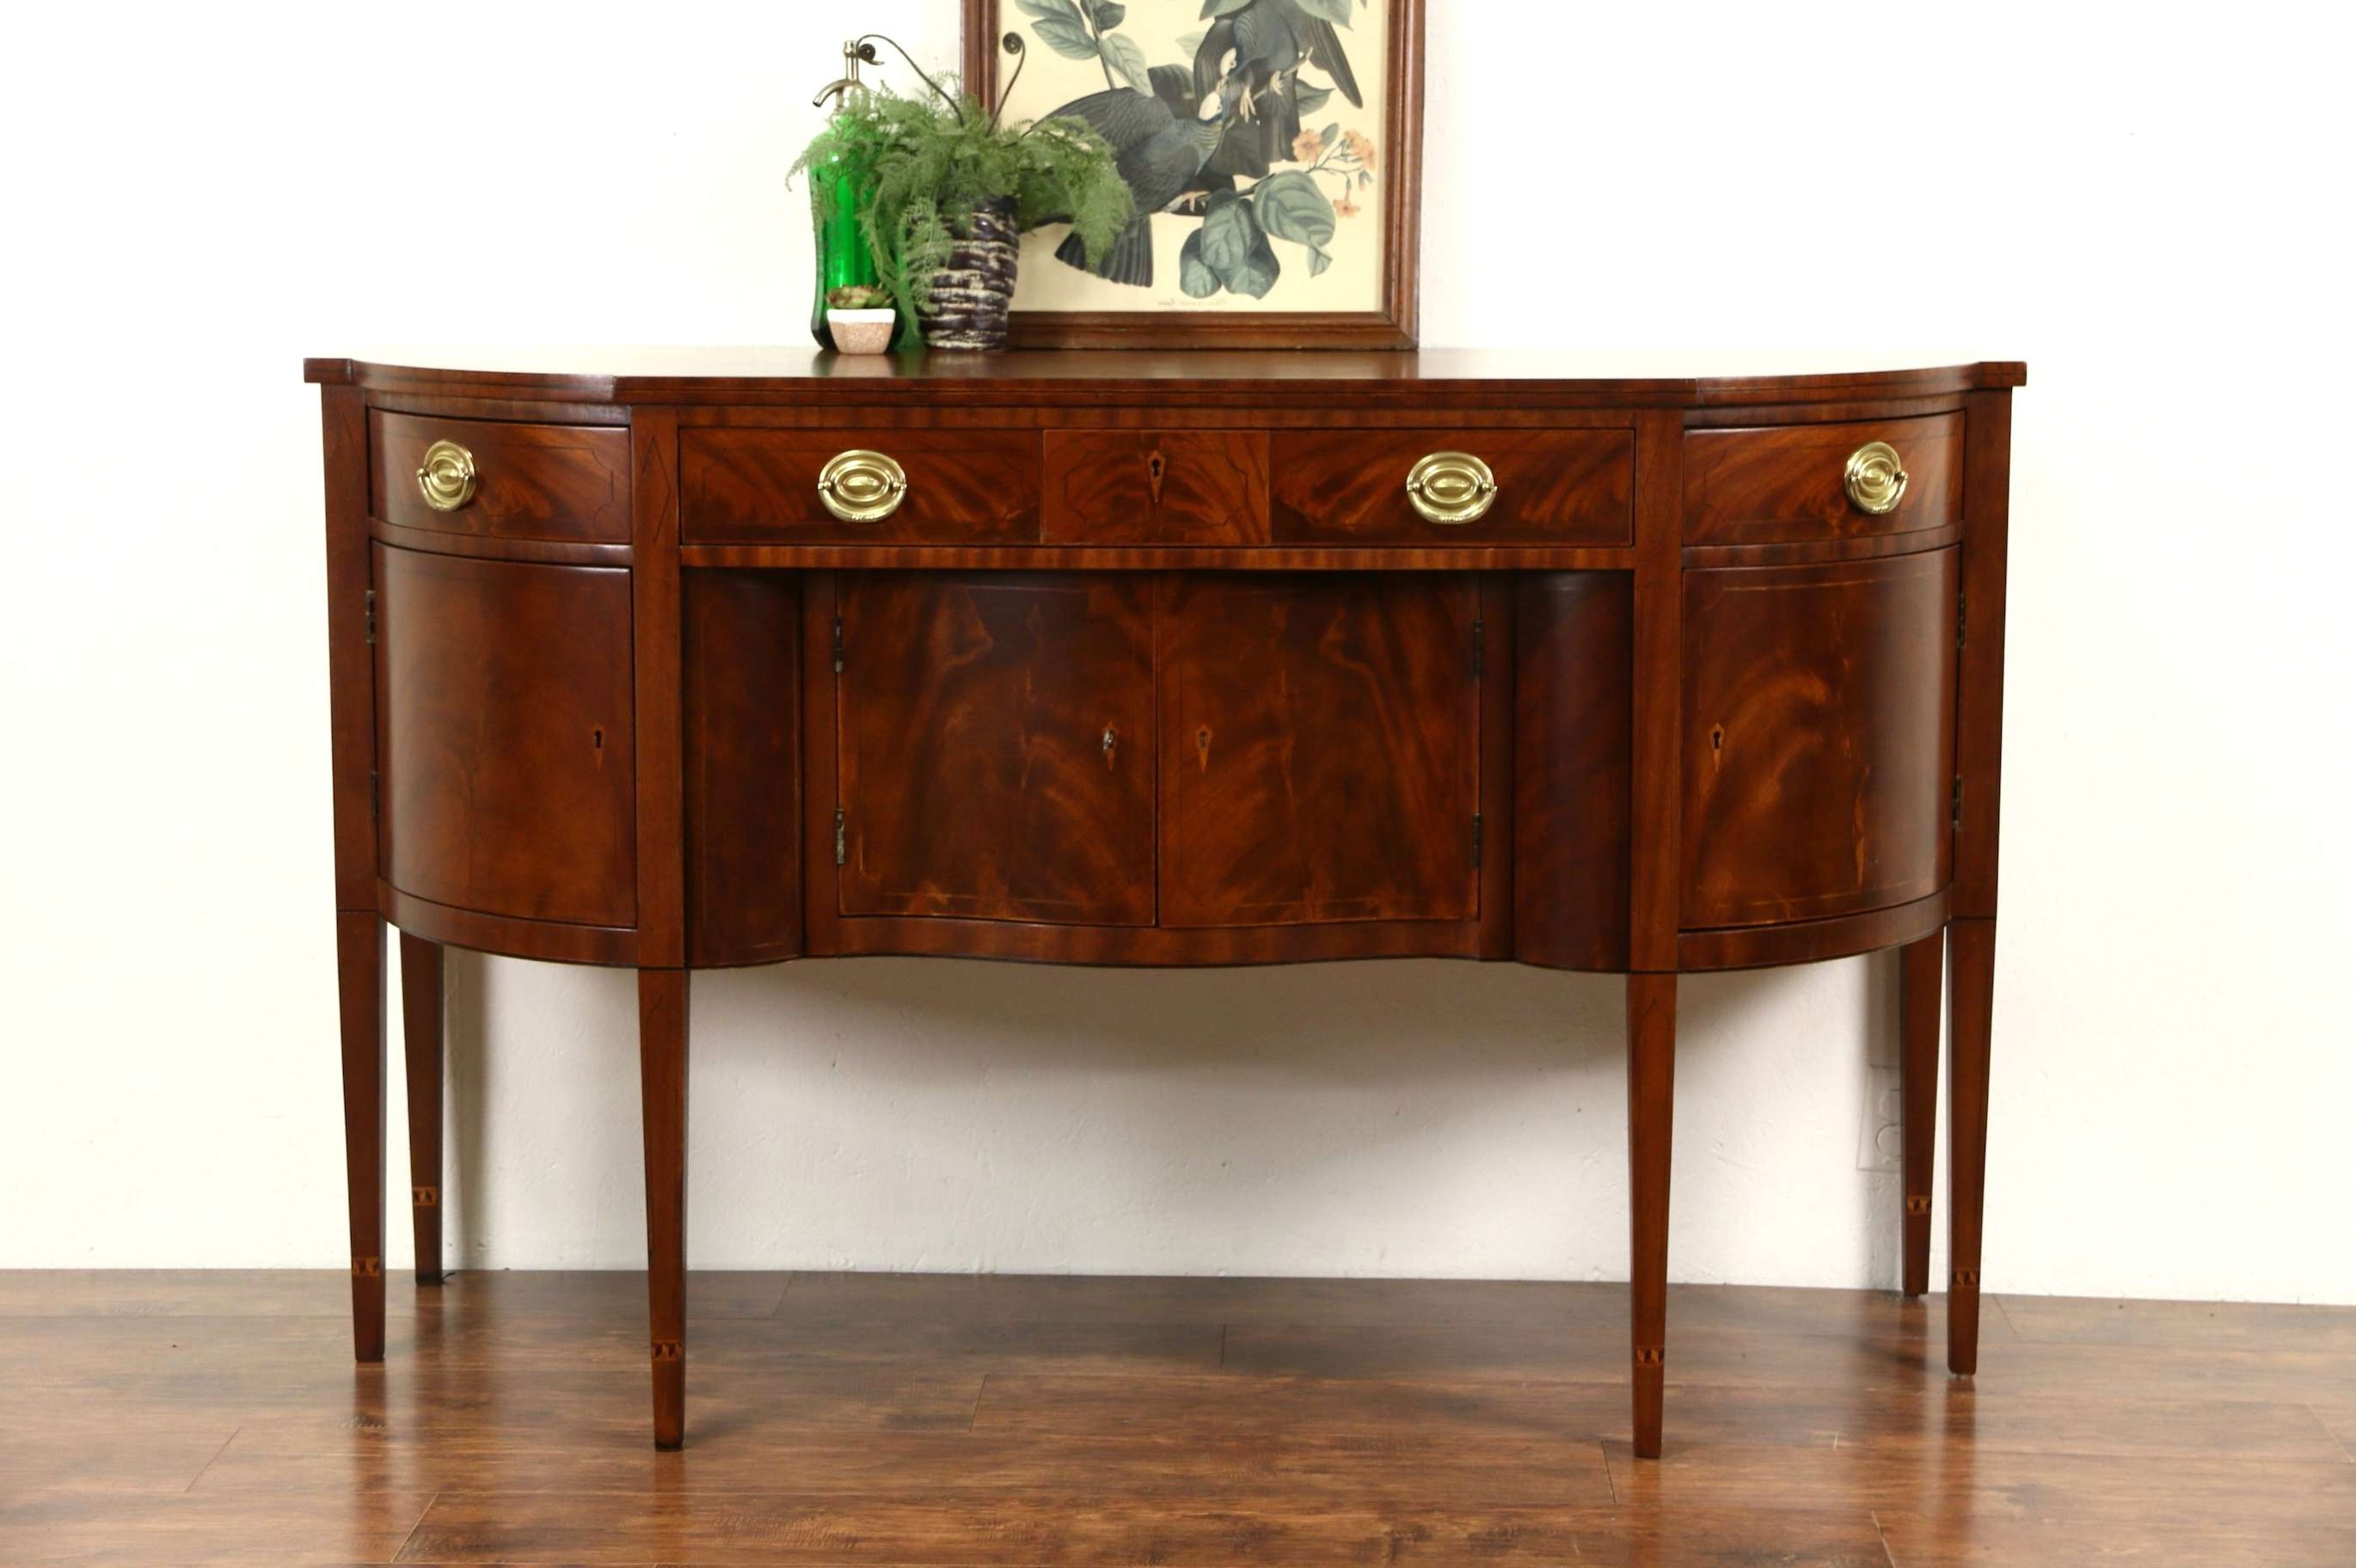 Sold – Henredon Natchez Collection Vintage Mahogany Sideboard Regarding Mahogany Sideboards (View 15 of 20)